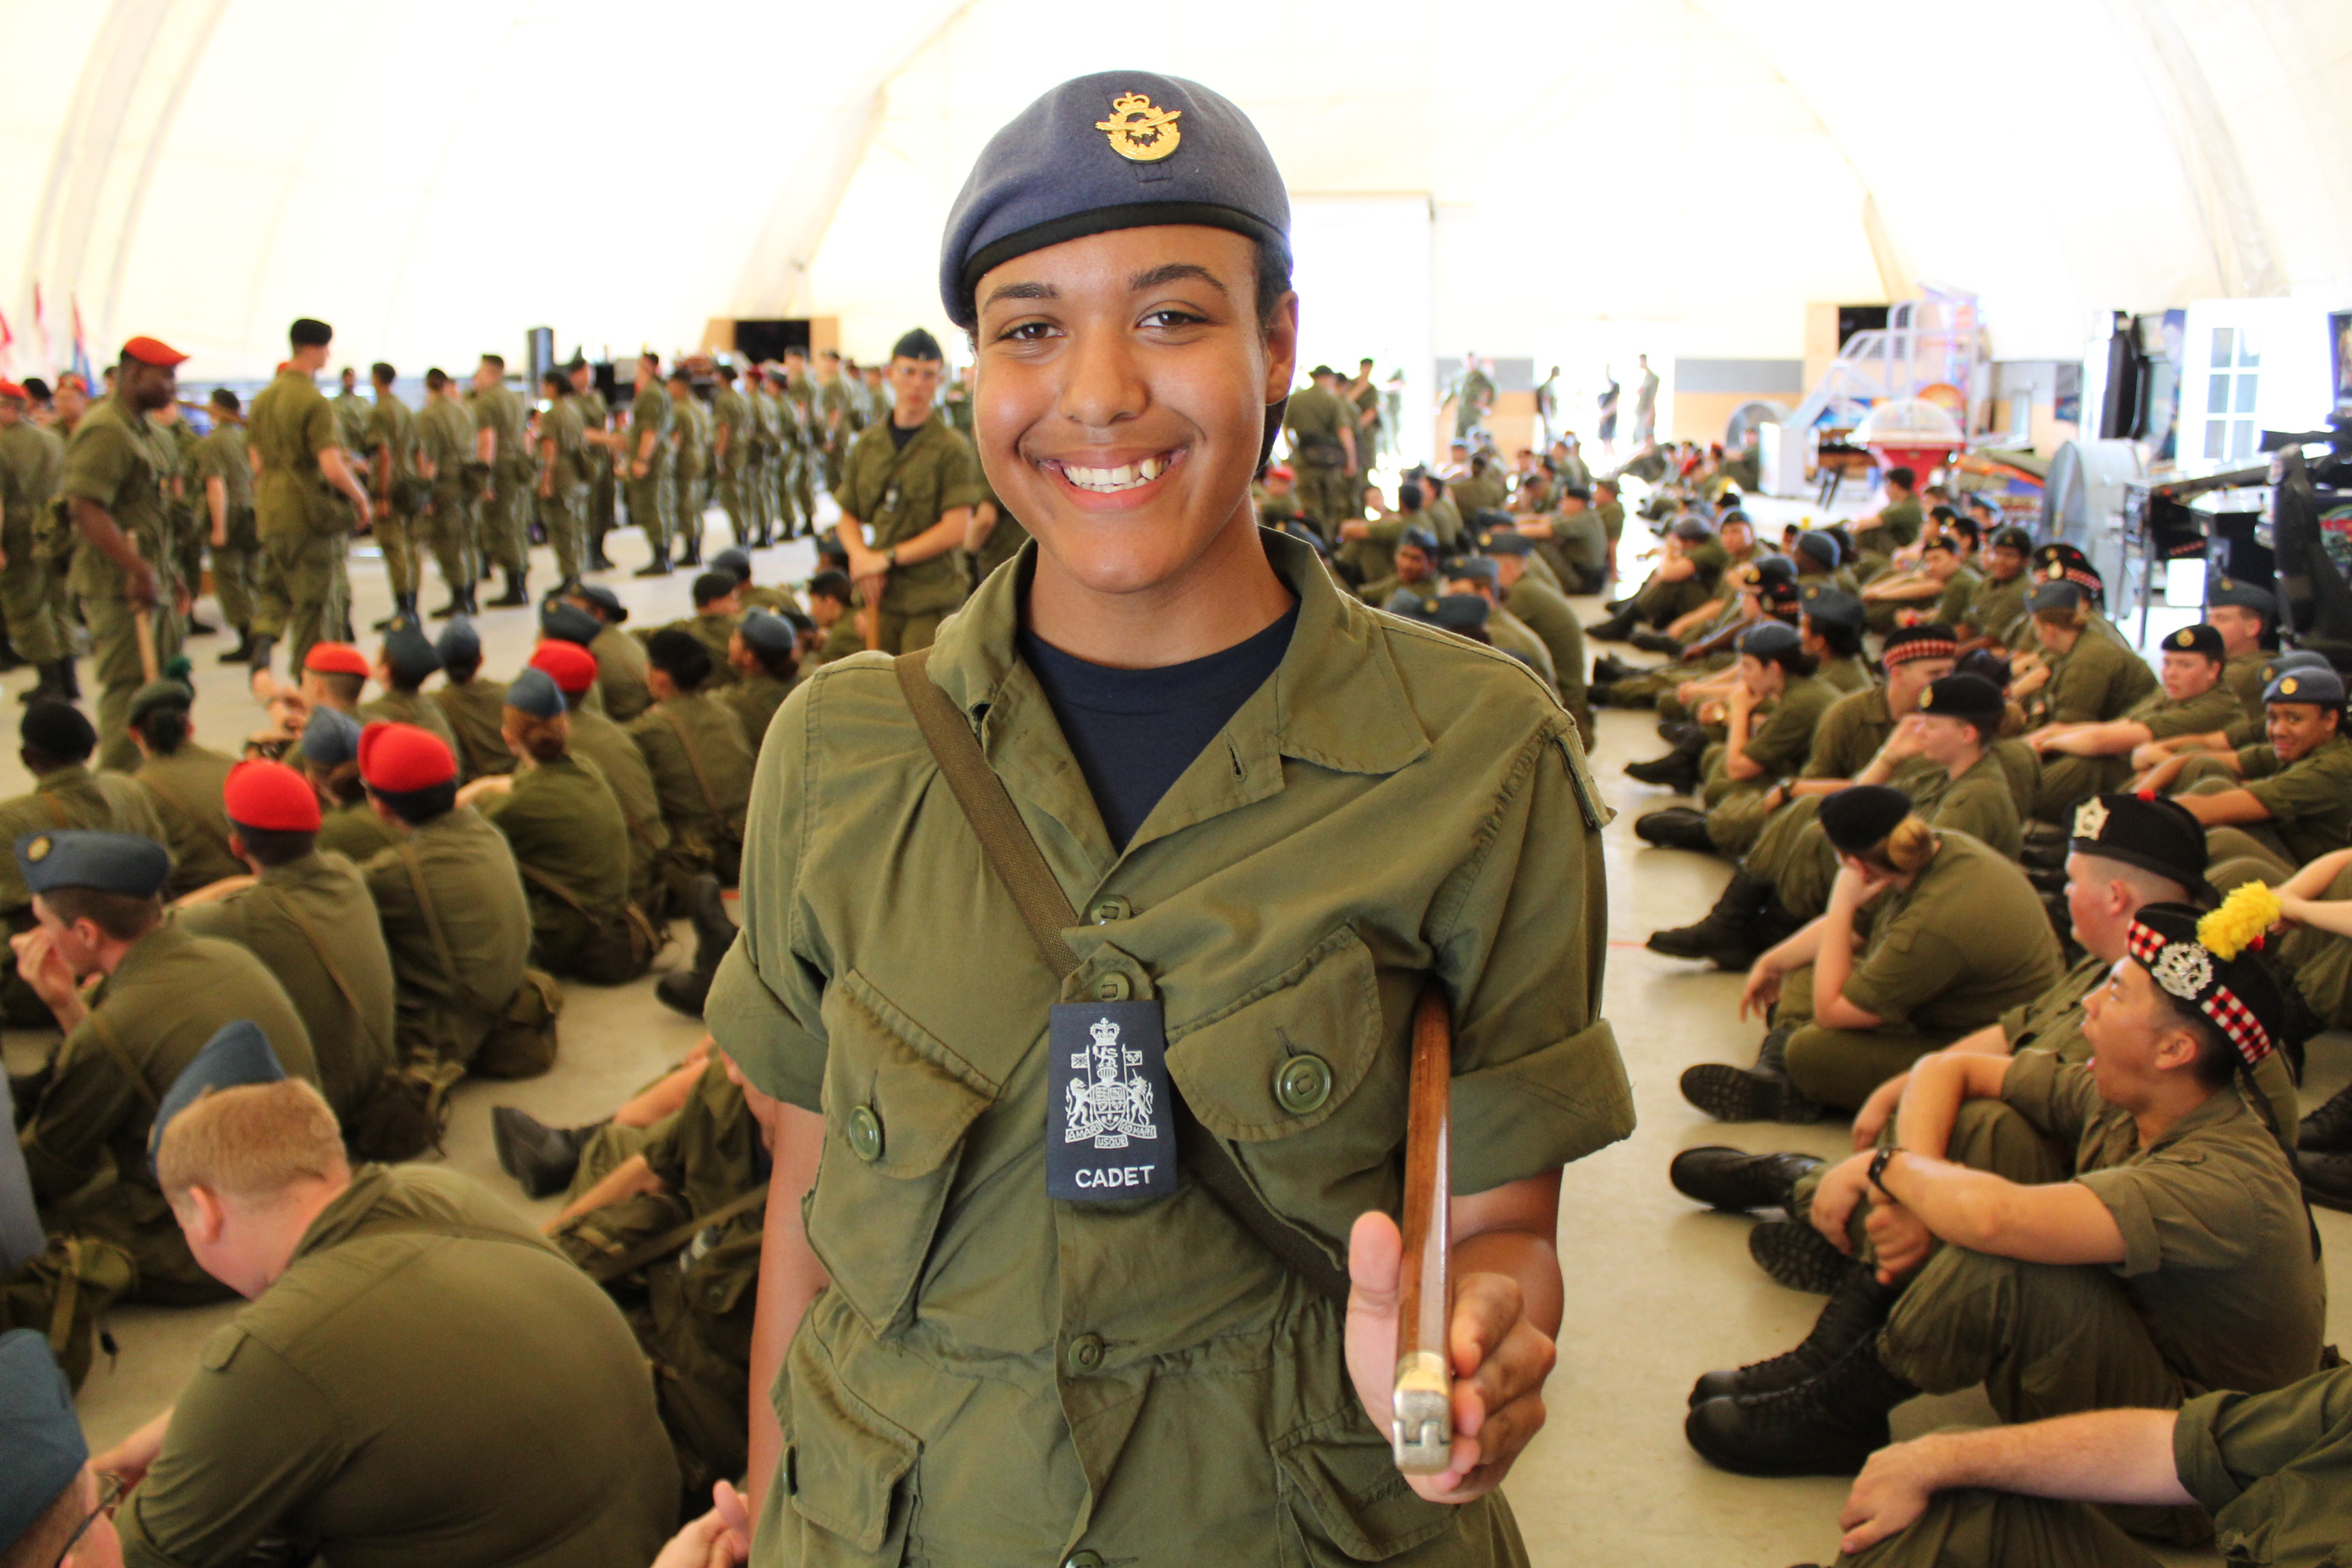 Blackdown turns cadets into the leaders of the future